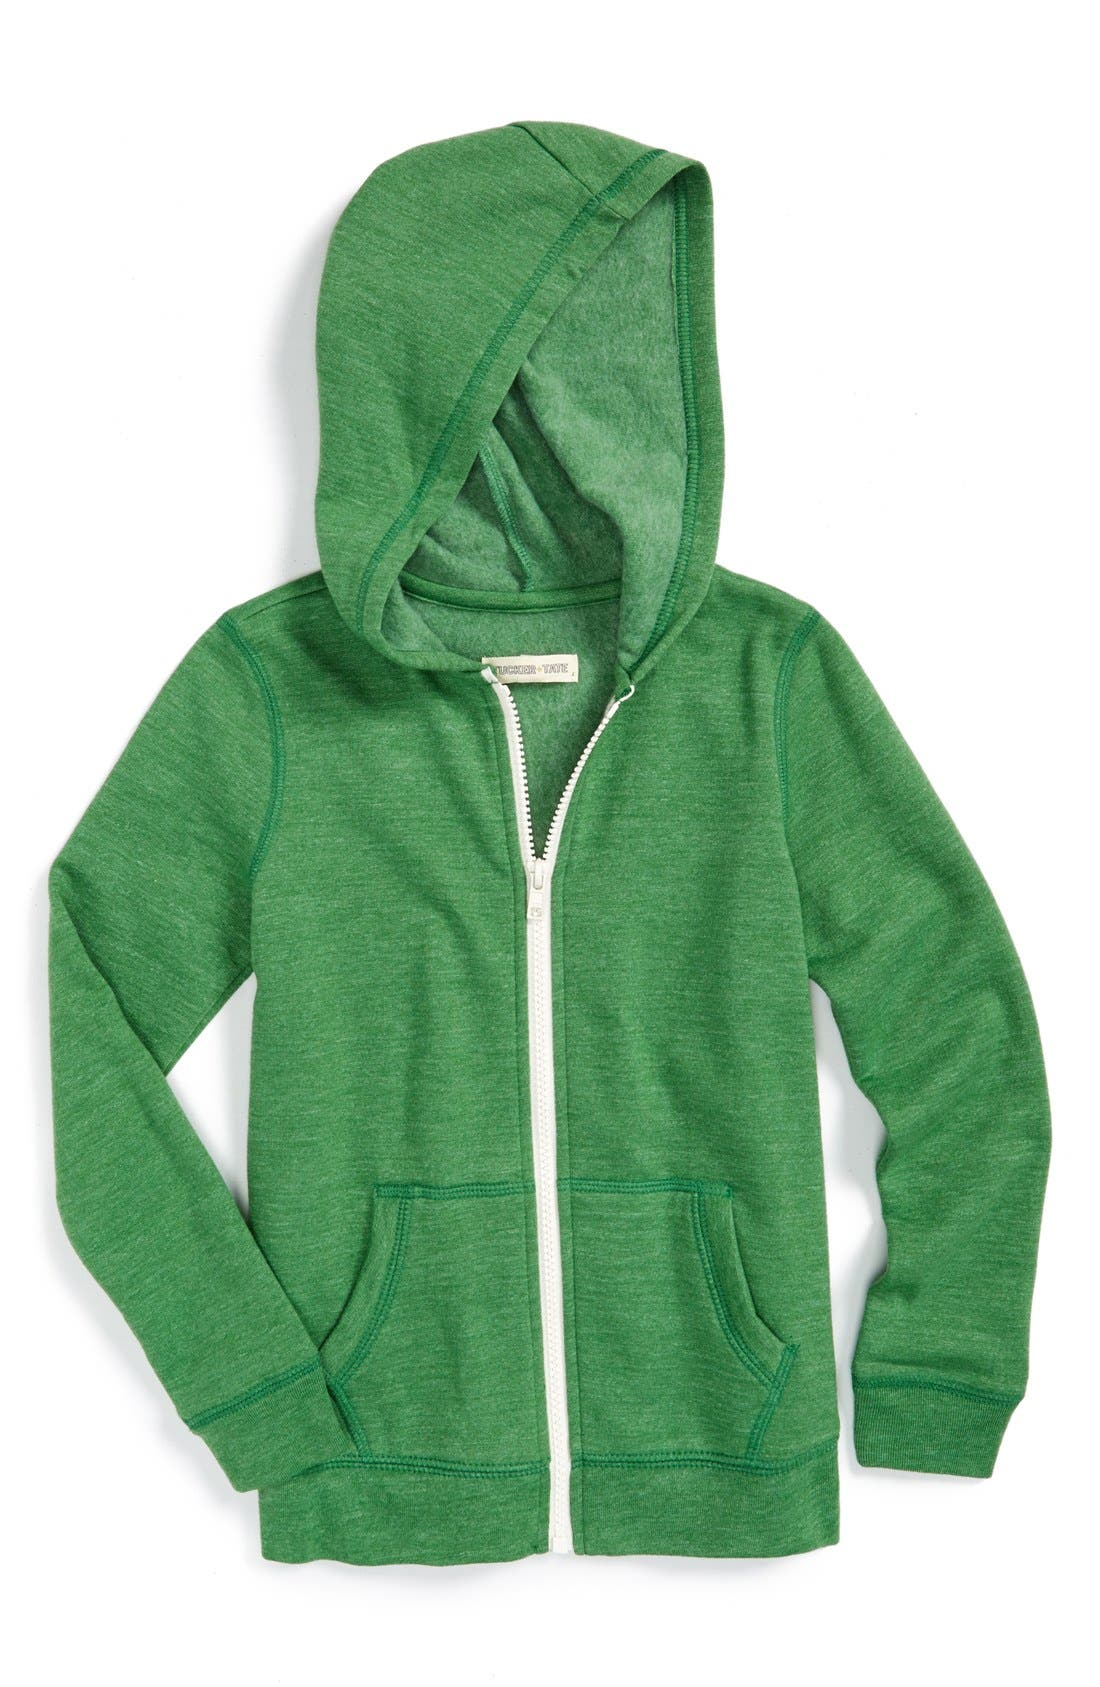 Main Image - Tucker + Tate Zip Front Hoodie (Toddler Boys, Little Boys & Big Boys)